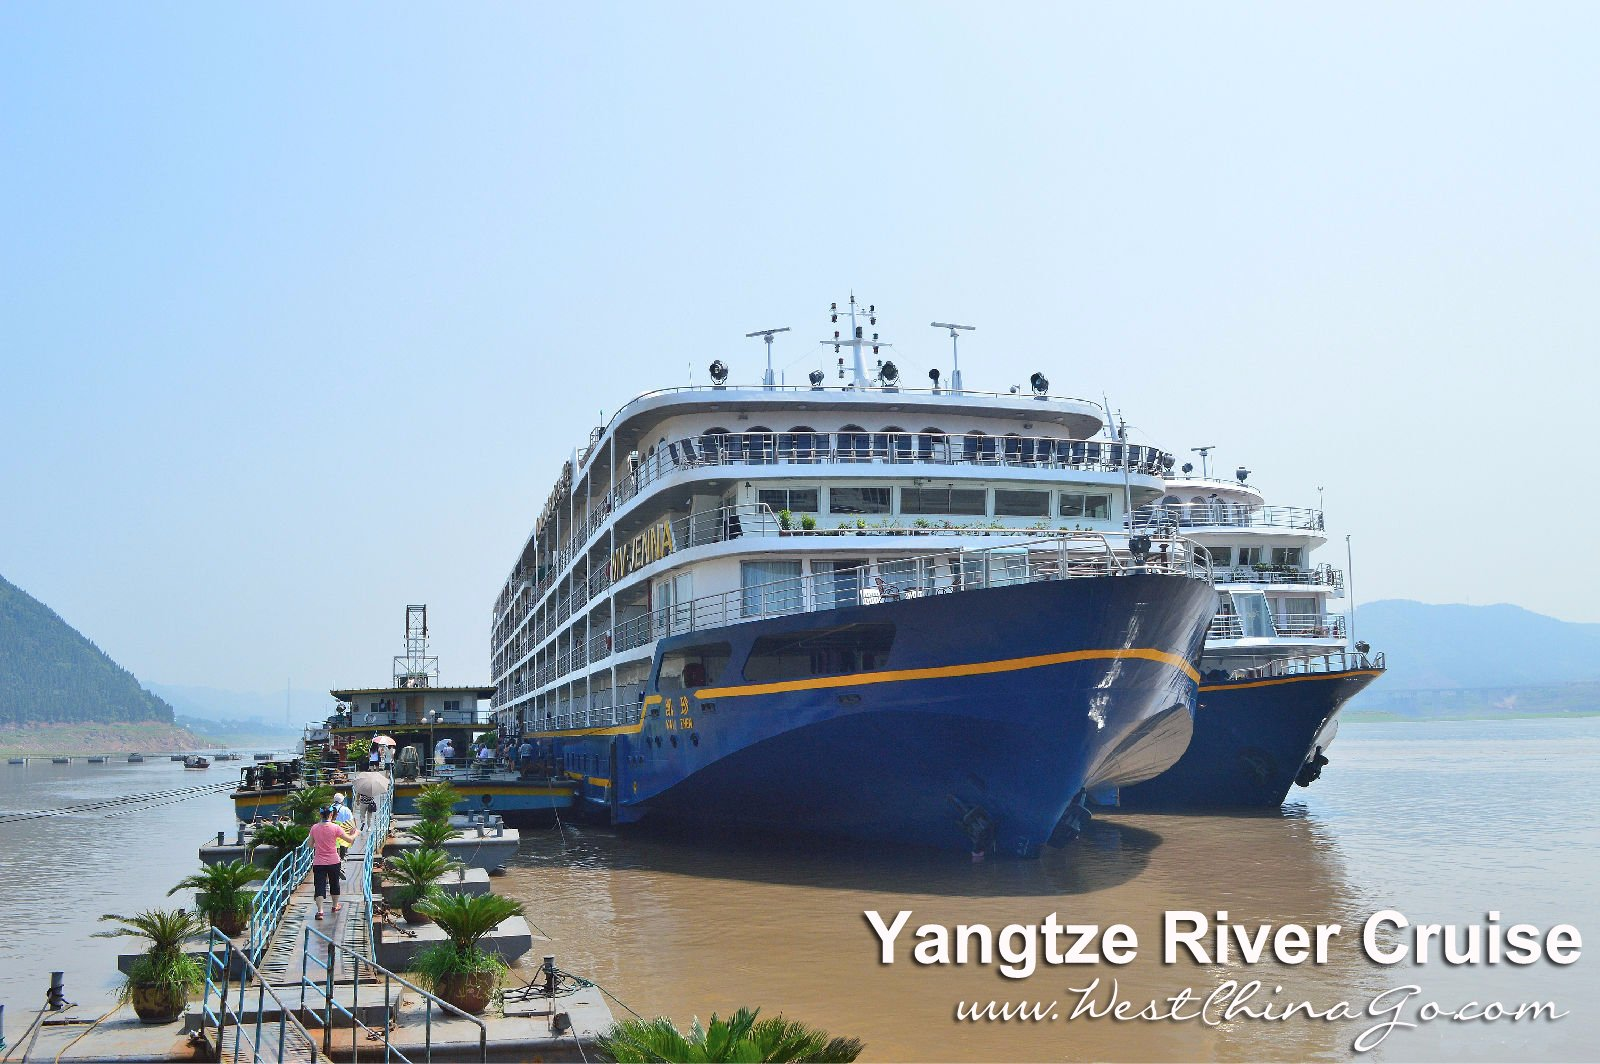 Yangtze River Cruise Tour Photo Gallery